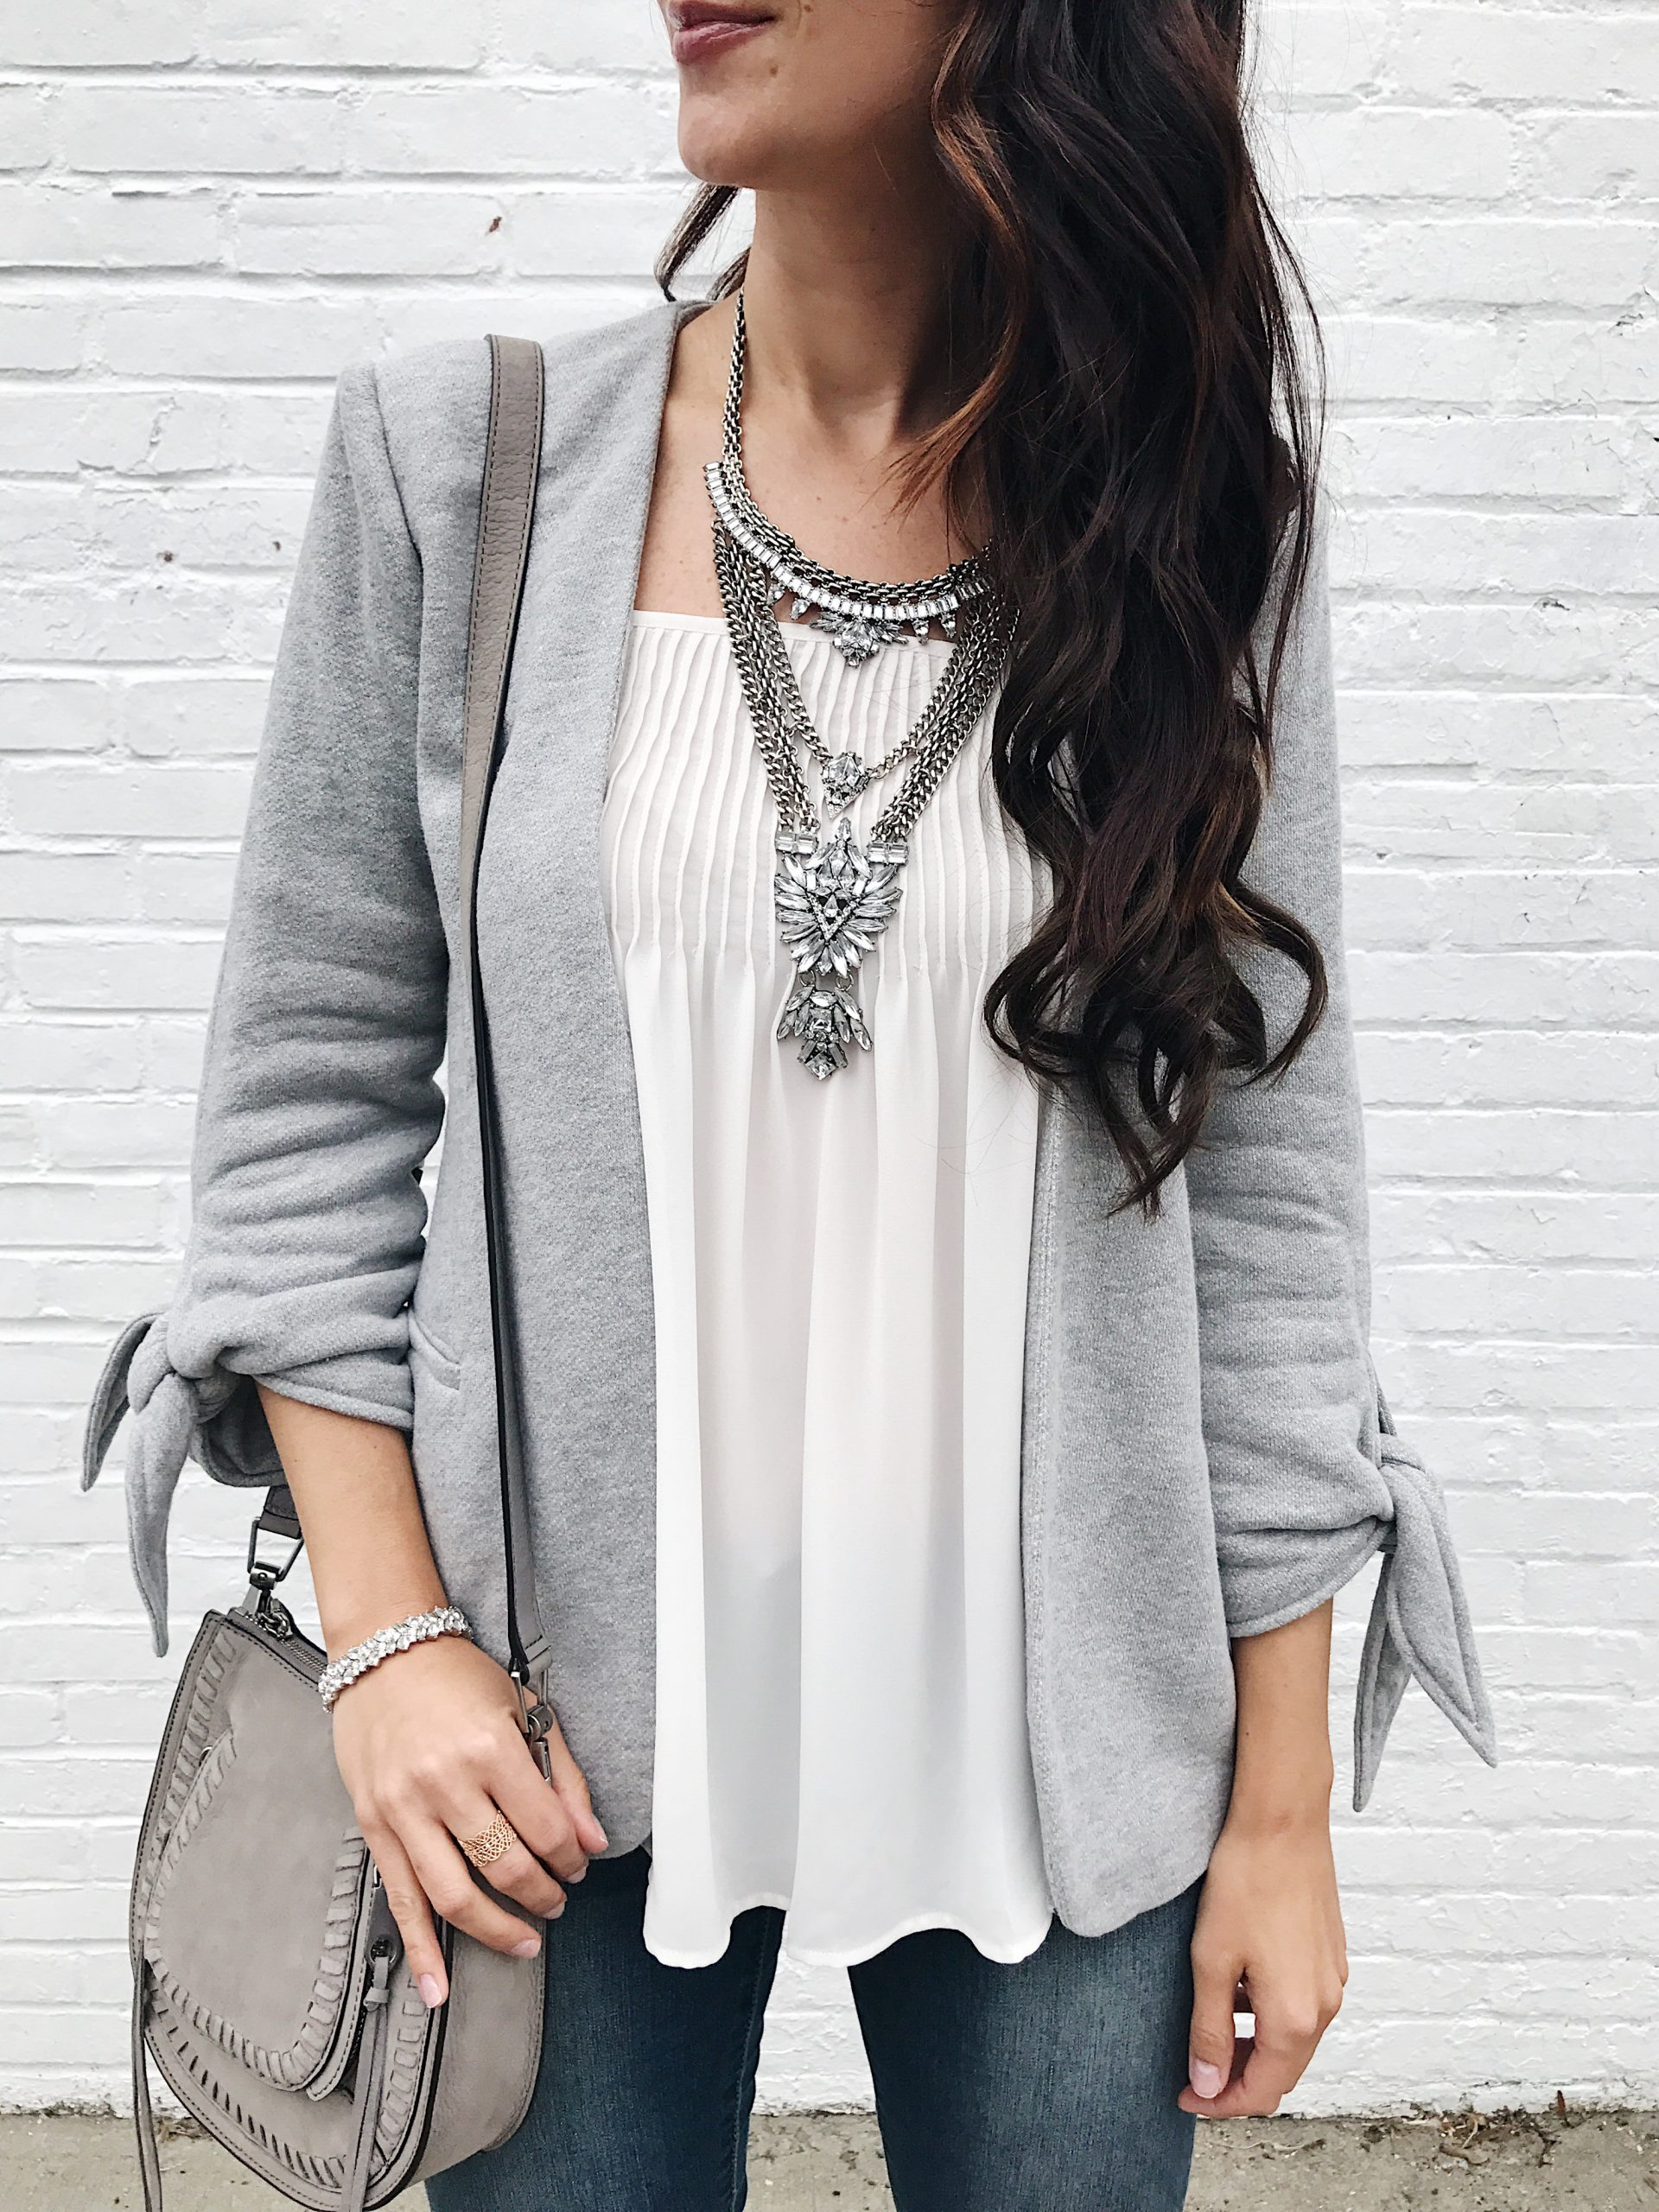 blogger Anna Monteiro of Blushing ROse Style wearing Fall Outfits grey knit Olivia Moon blazer, bauablebar necklace and LOFT camisole